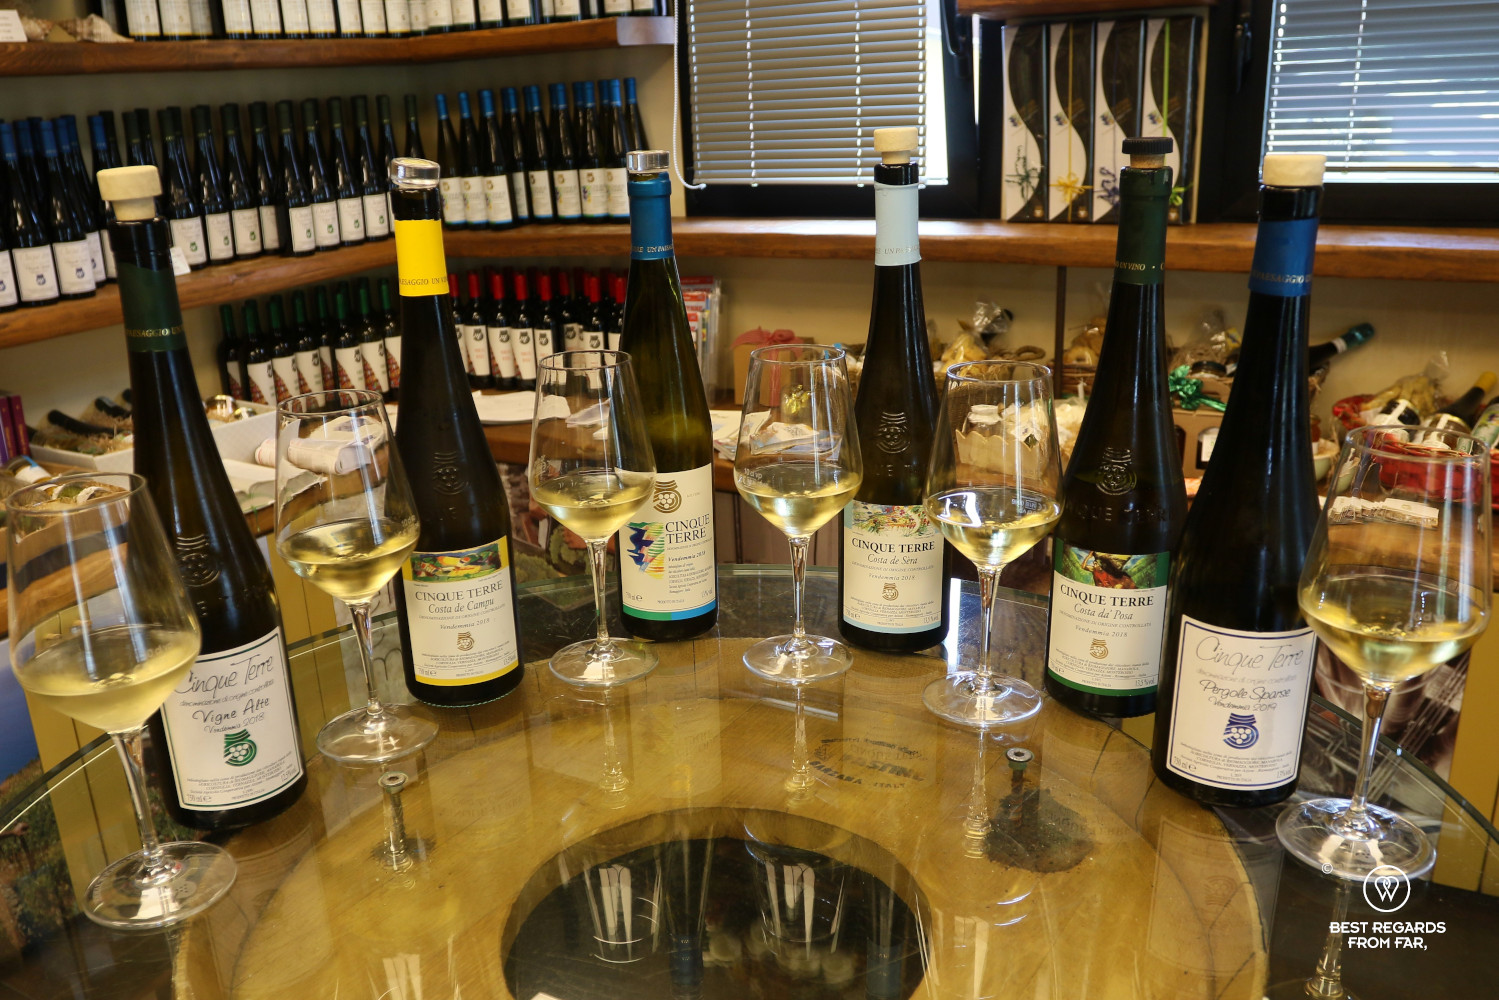 Six bottles of Cinque Terre white wines with six glasses of white wine